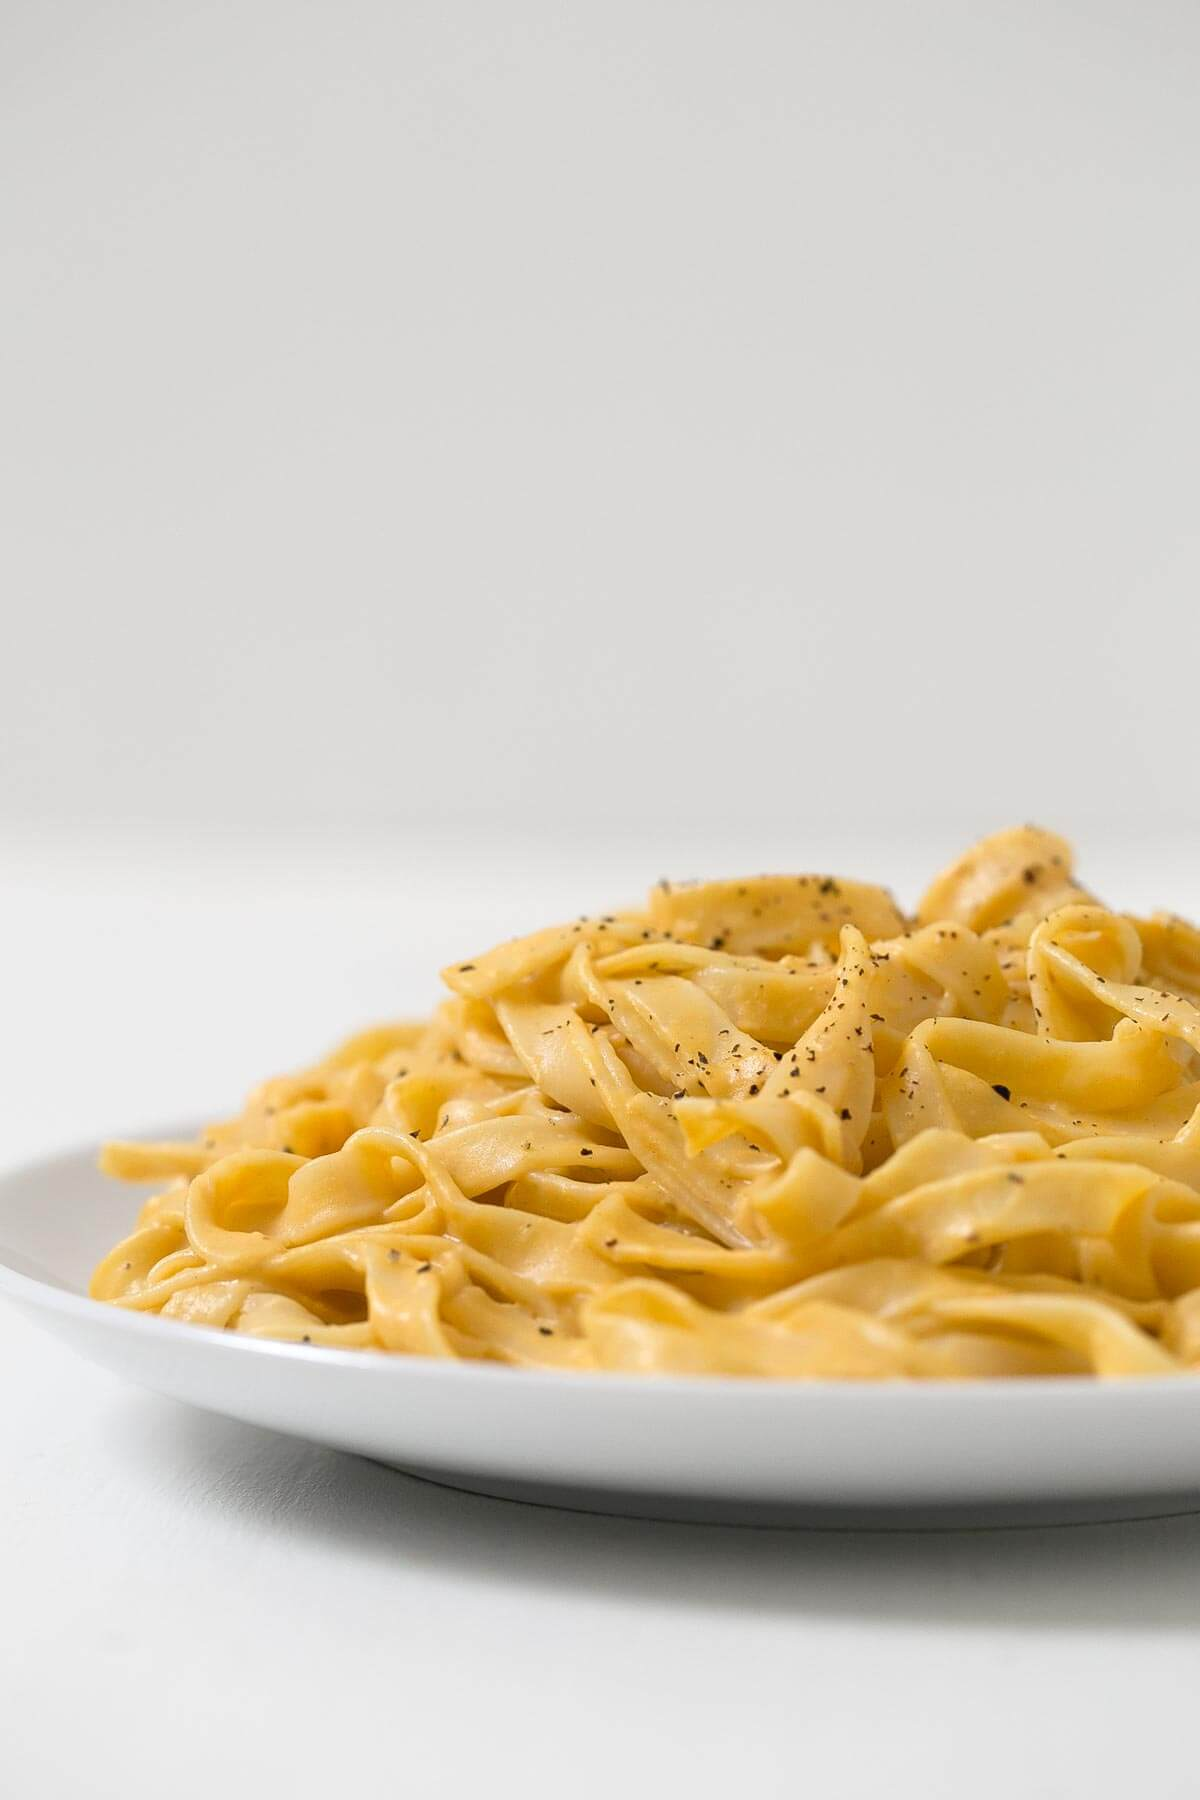 Pumpkin Alfredo Pasta. - This Pumpkin Alfredo Pasta Recipe is very creamy, light, quick, and easy to make. It is also perfect for the day today.